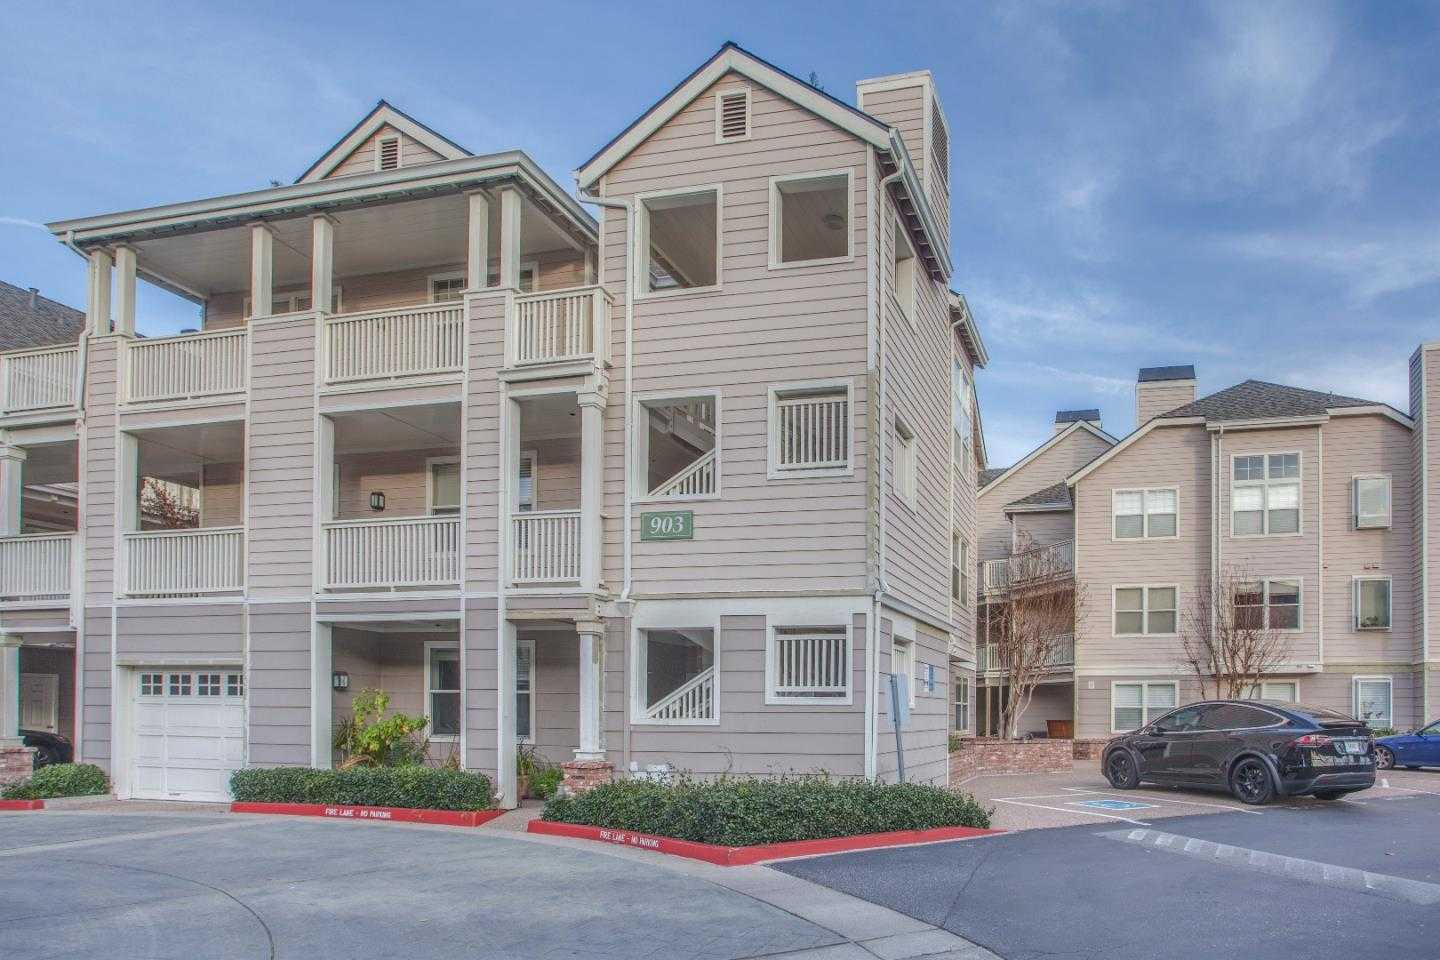 $939,000 - 2Br/2Ba -  for Sale in Sunnyvale